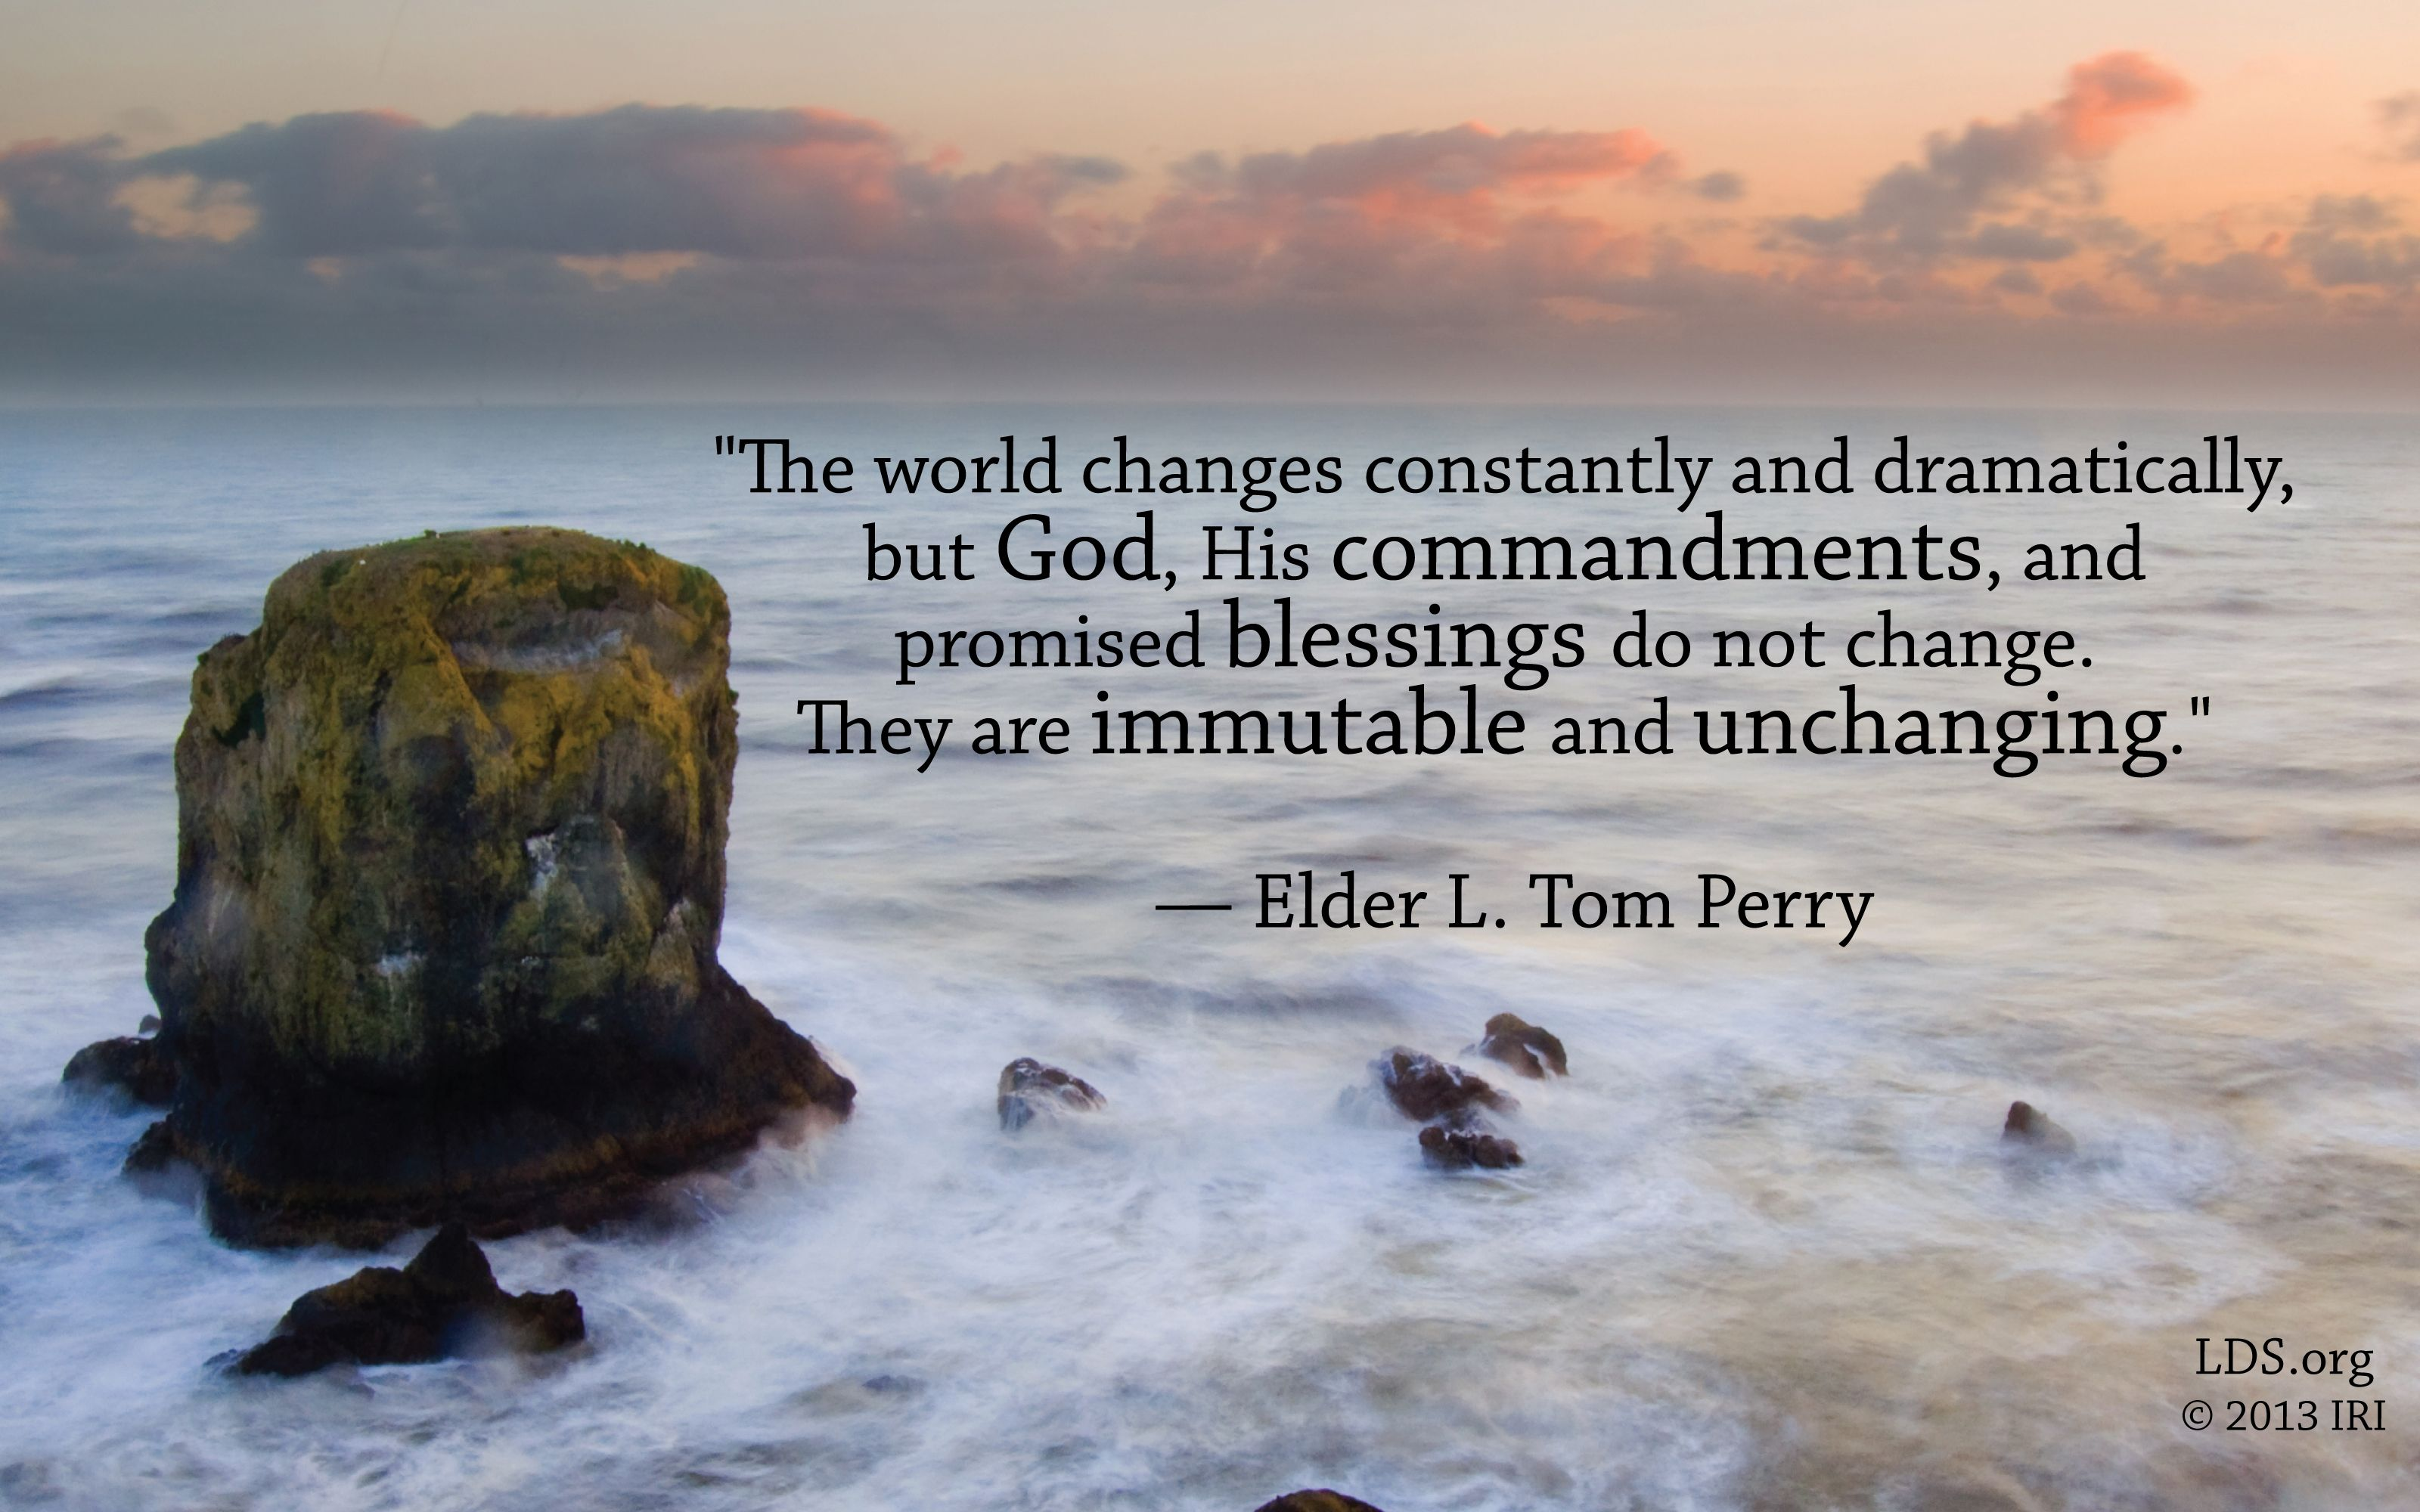 """""""The world changes constantly and dramatically, but God, His commandments, and promised blessings do not change. They are immutable and unchanging.""""—Elder L. Tom Perry, """"Obedience to Law Is Liberty"""""""